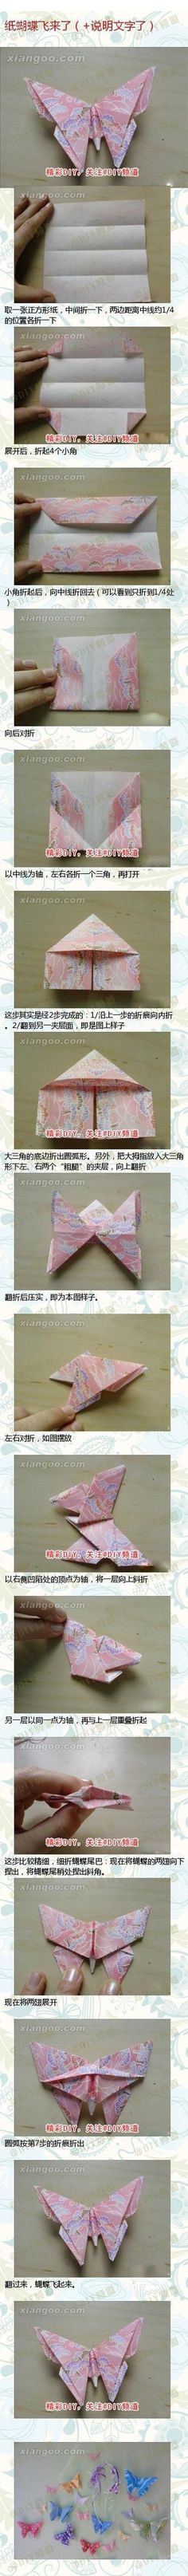 Origami Moth Butterfly Paper #origami Moth Butterfly Paper F #OrigamiLife